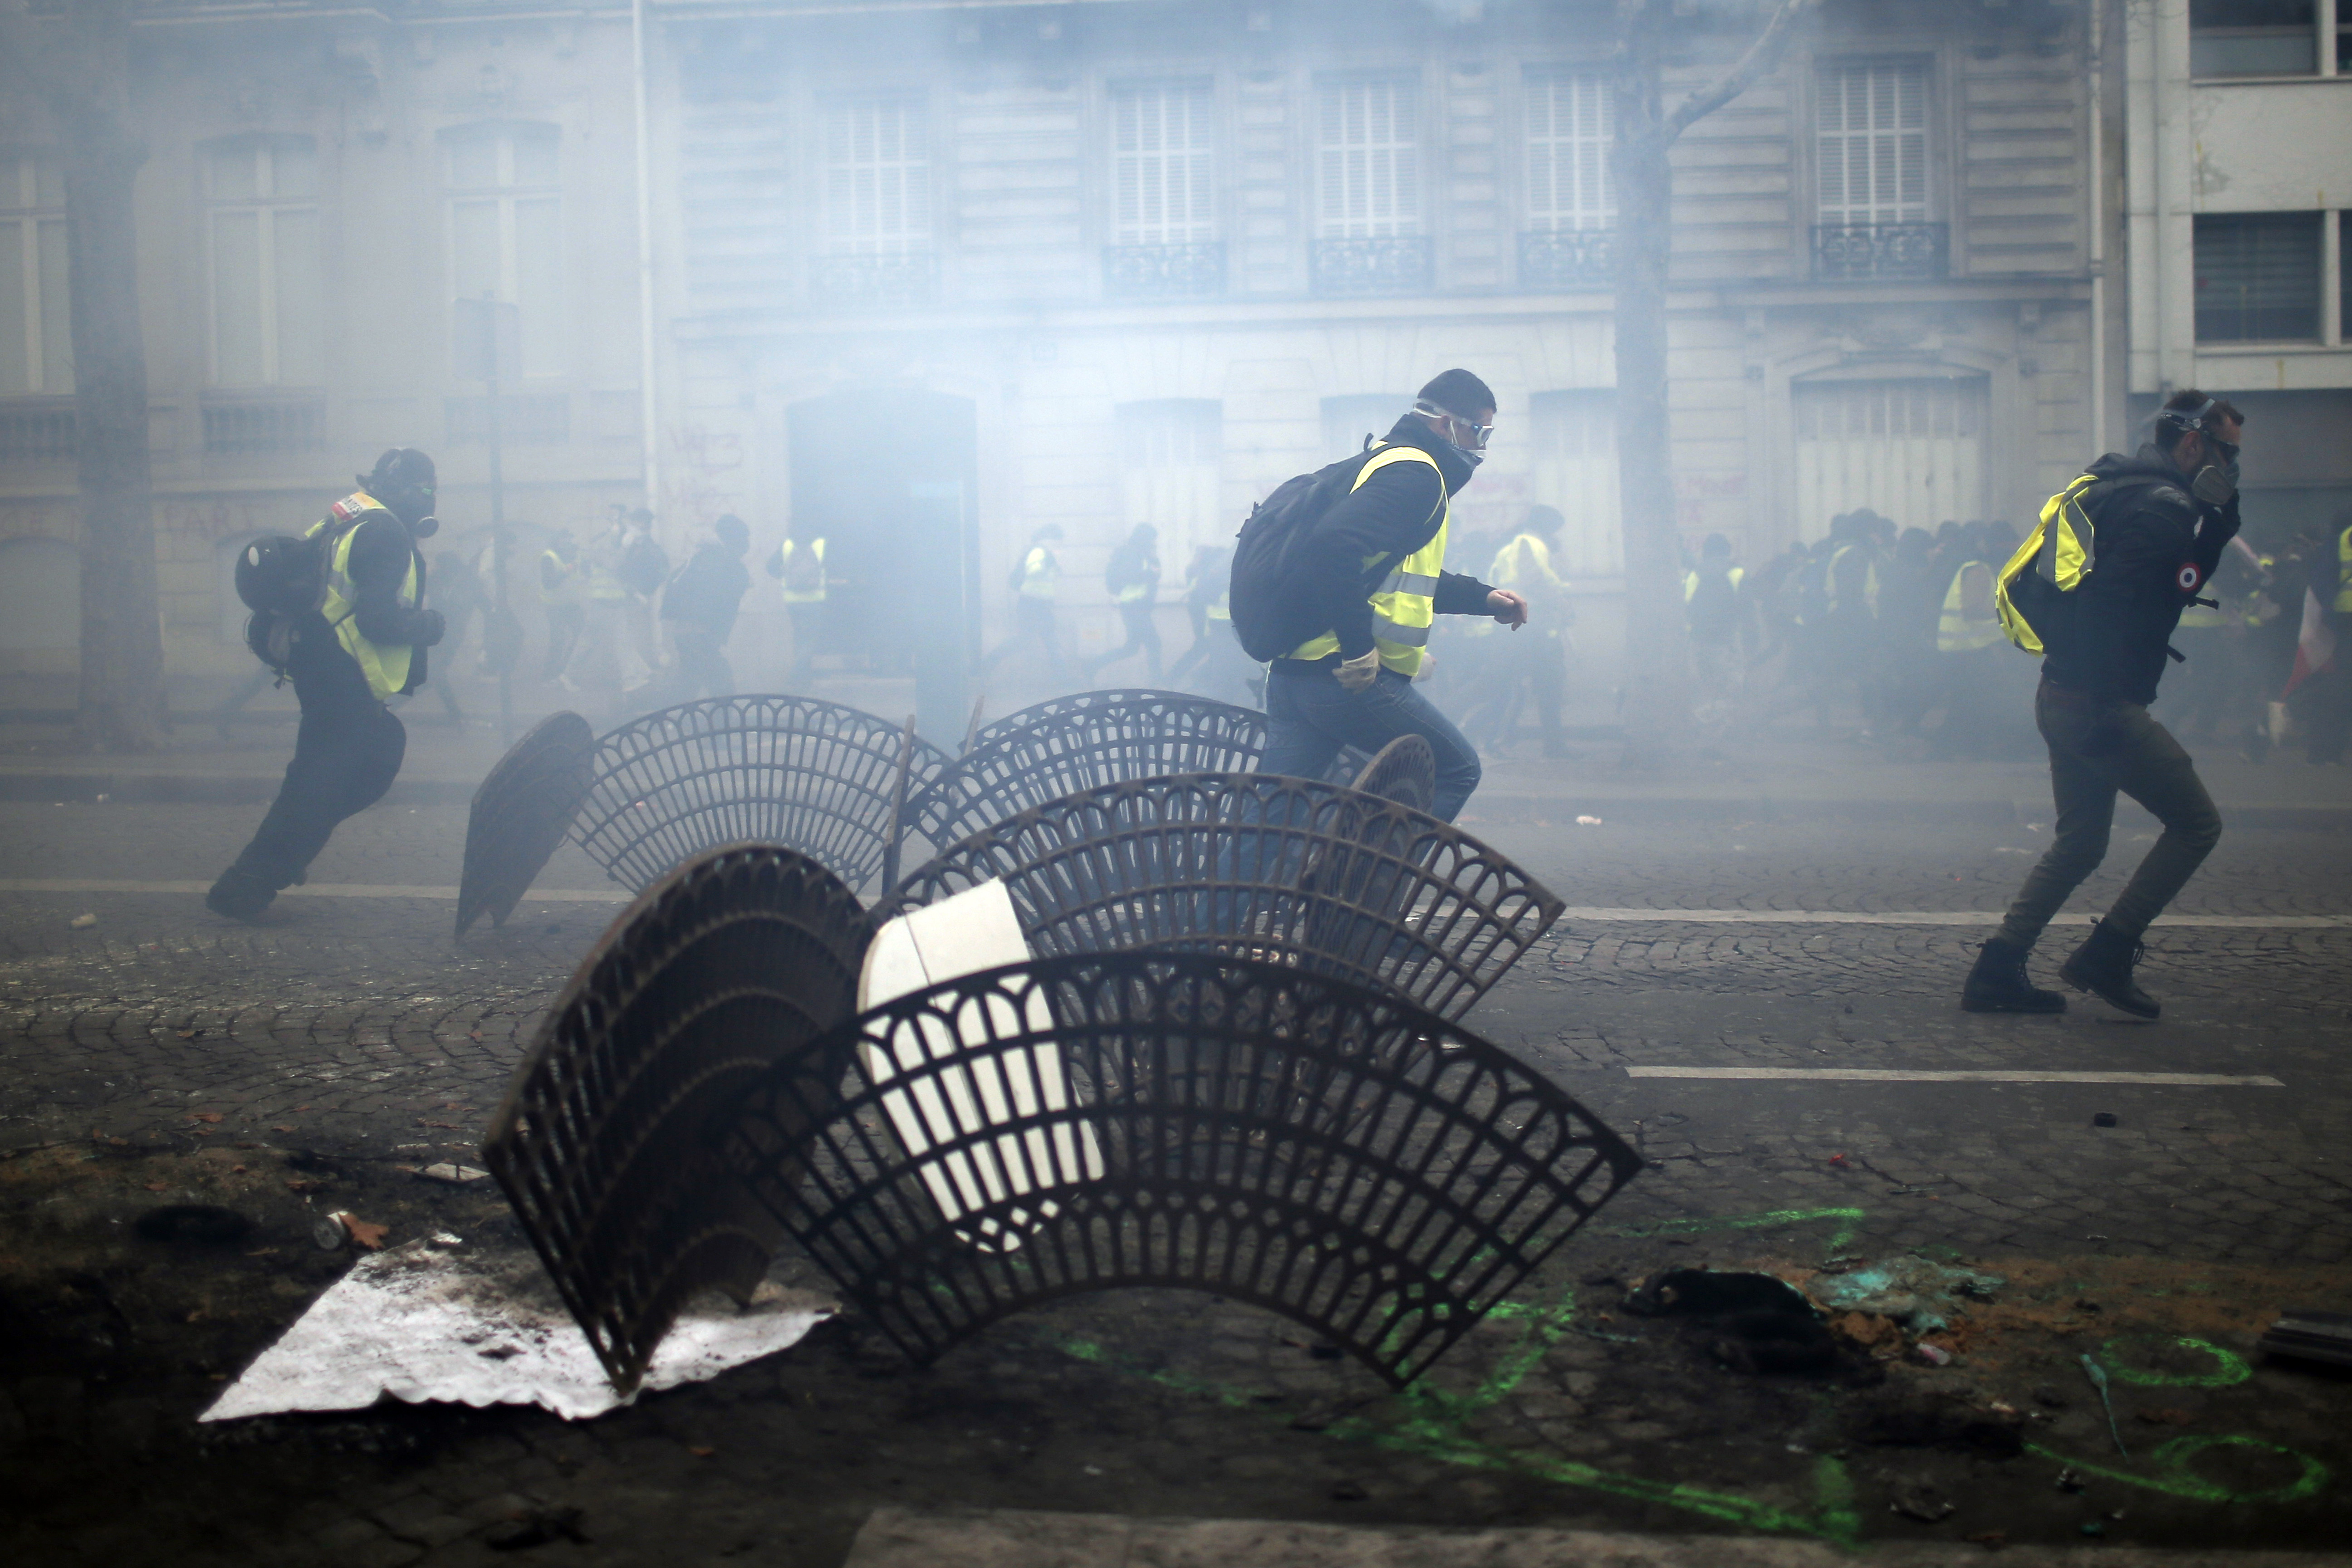 Demonstrators run away during clashes Saturday, Dec. 8, 2018 in Paris. Crowds of yellow-vested protesters angry at President Emmanuel Macron and France's high taxes tried to converge on the presidential palace Saturday, some scuffling with police fir